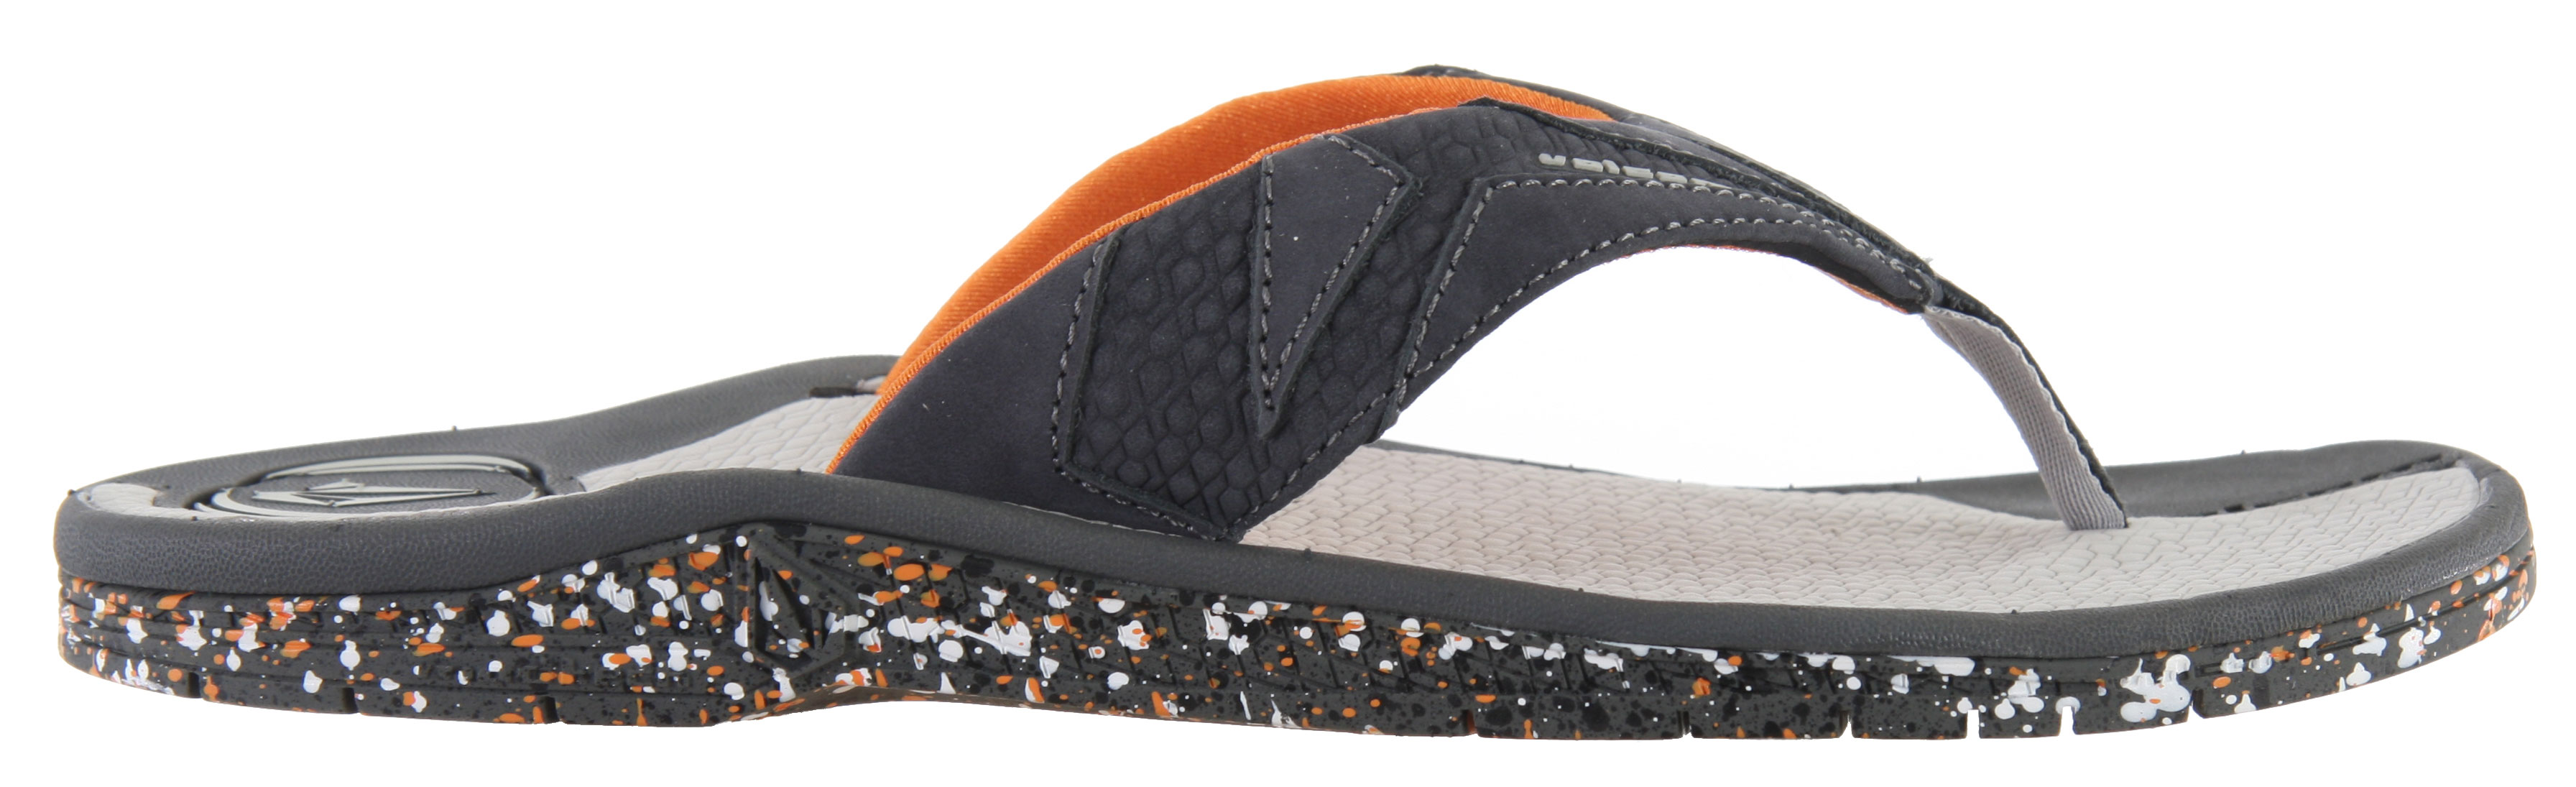 Surf Flat sandals are the perfect tool for ruining feet; they rub and chafe against the soles and ruin easily. The Volcom Annihilator Creedler Sandals are the perfect solution to any such problems,they include every aspect that someone could hope for in the ideal comfortable sandal. The gel inner lining of the sandal conforms comfortably to the exact shape of the sole of the foot to ensure that the sole of the foot is cradled in a comfortable and relaxing manner during every step you take.Key Features of the Volcom Annihilator Creedler Sandals: Soft Nubuck Leather Toe Strap/Post With Neoprene Lining Molded Foot Bed With Internal Gel Capsule Anatomic Contoured Foot Bed Articulating Molded Rubber Outsole - $28.95